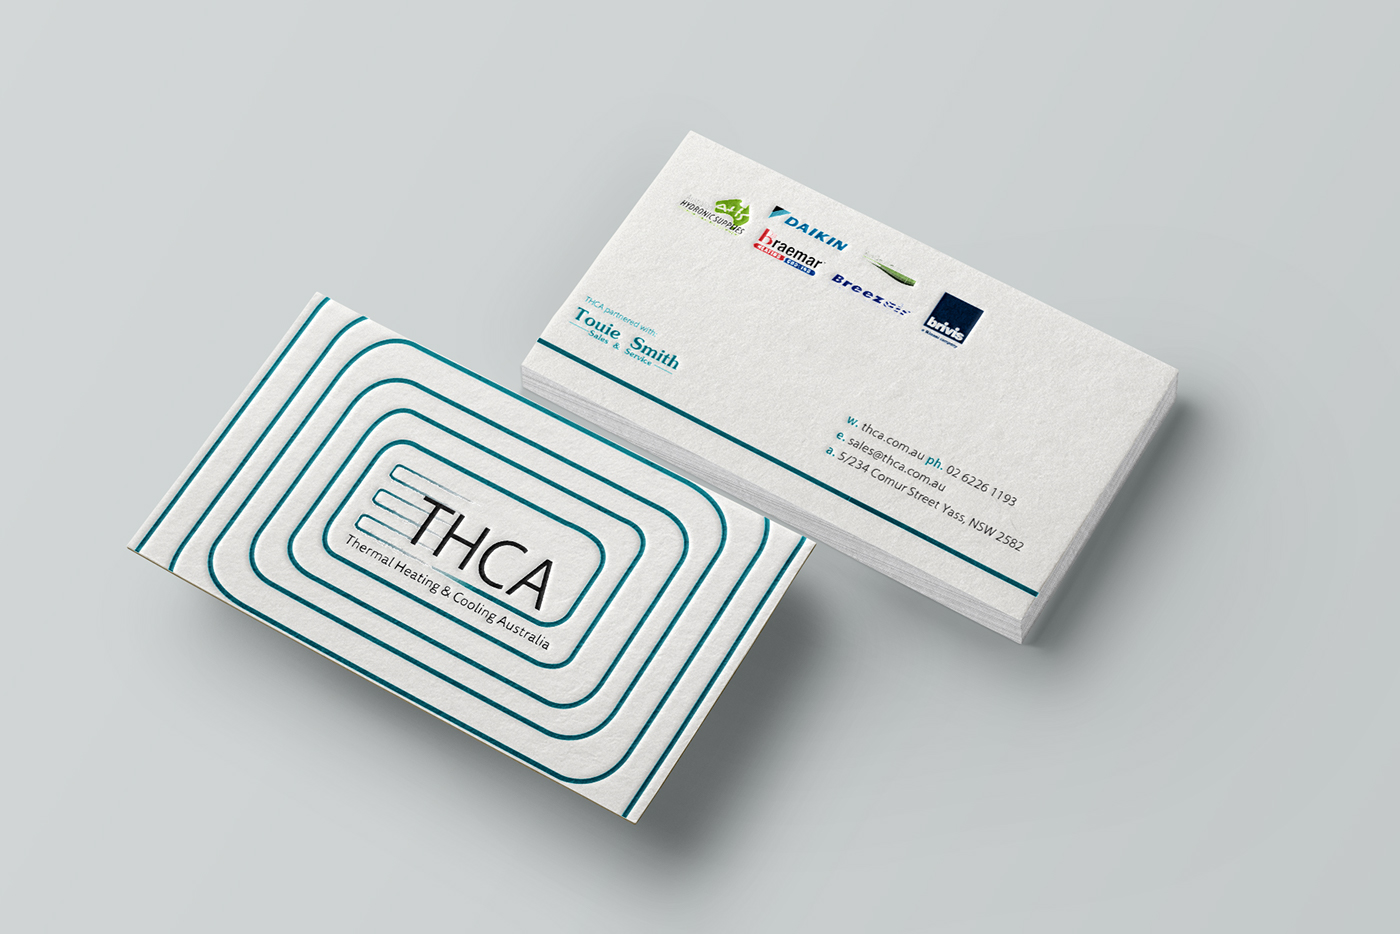 Thca thermal heating and cooling australia on behance reheart